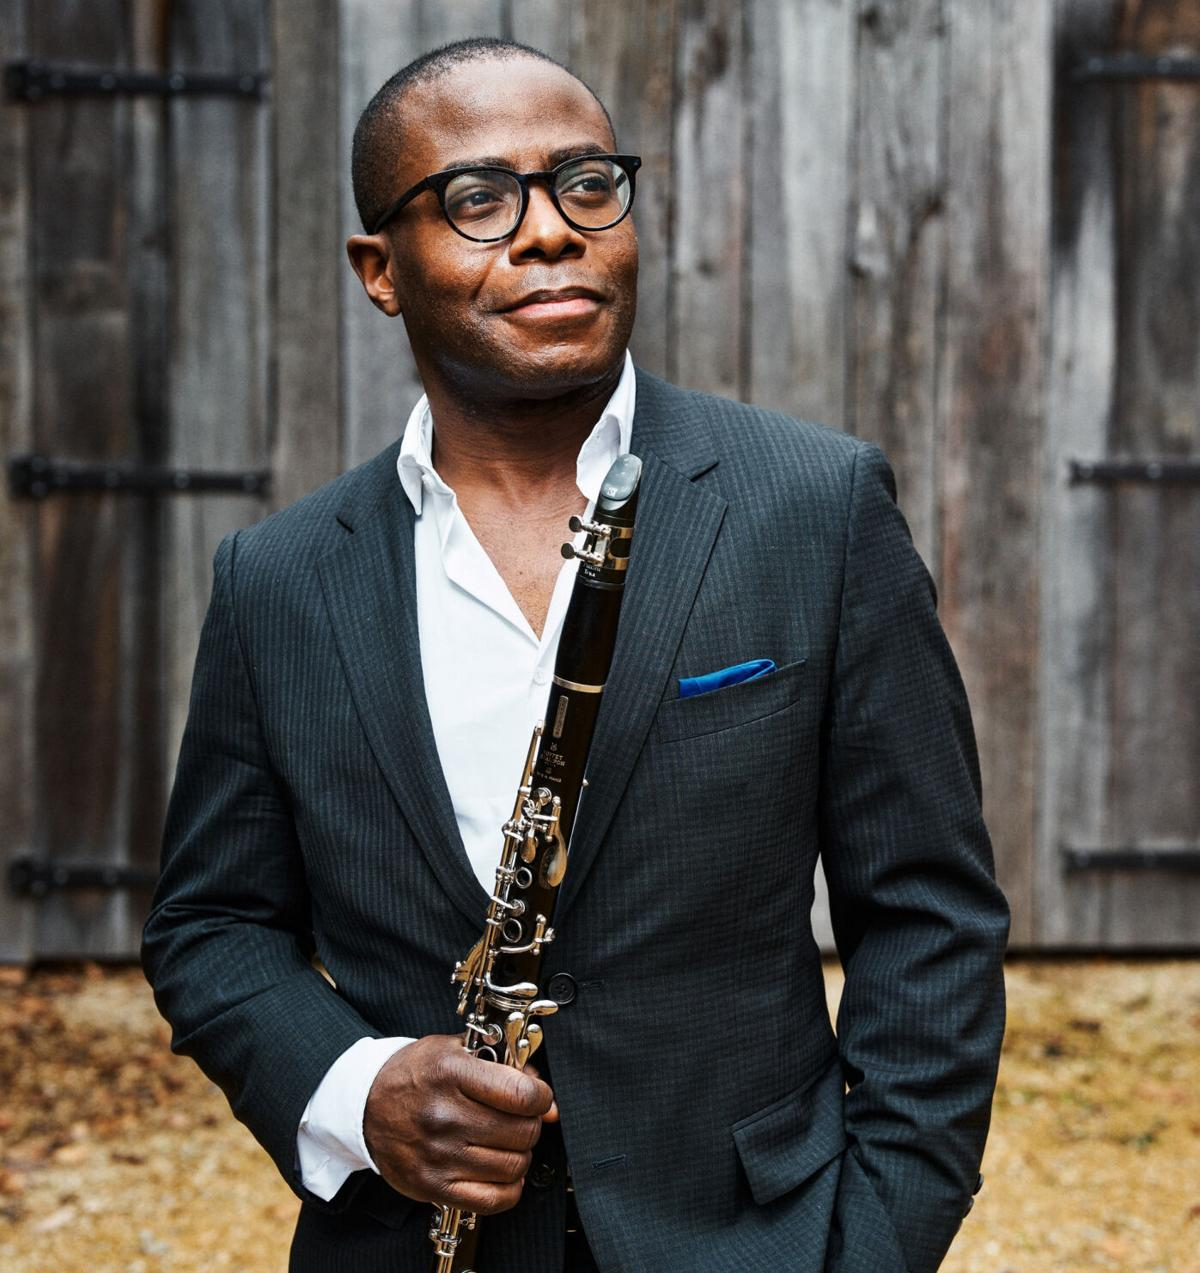 Tune in for a talk with renowned clarinetist